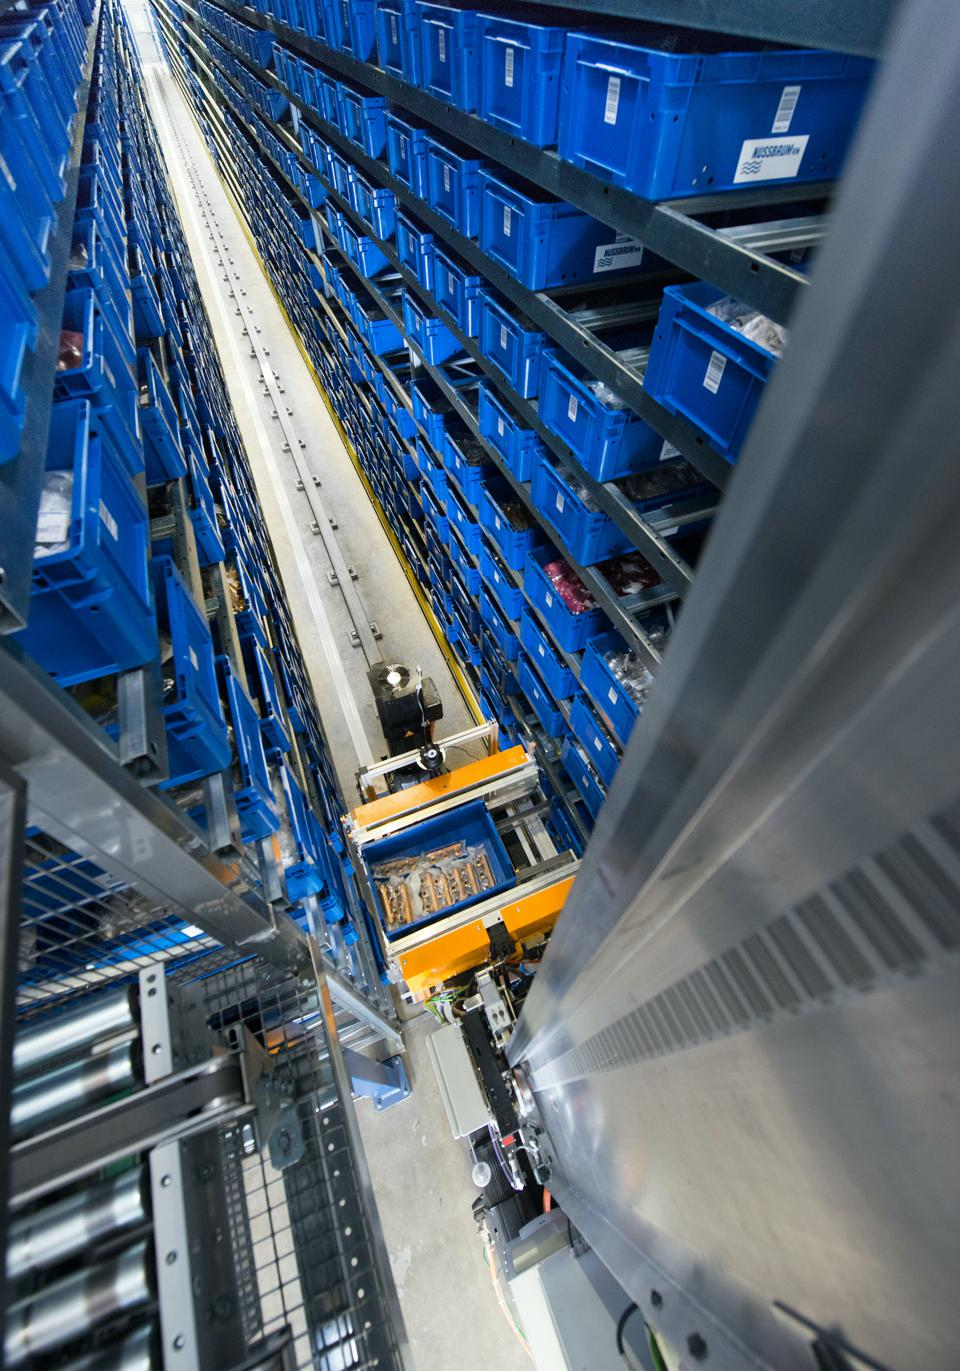 Automated Storage and Retrieval Systems (AS/RSs) operate in 100-feet-tall environments.